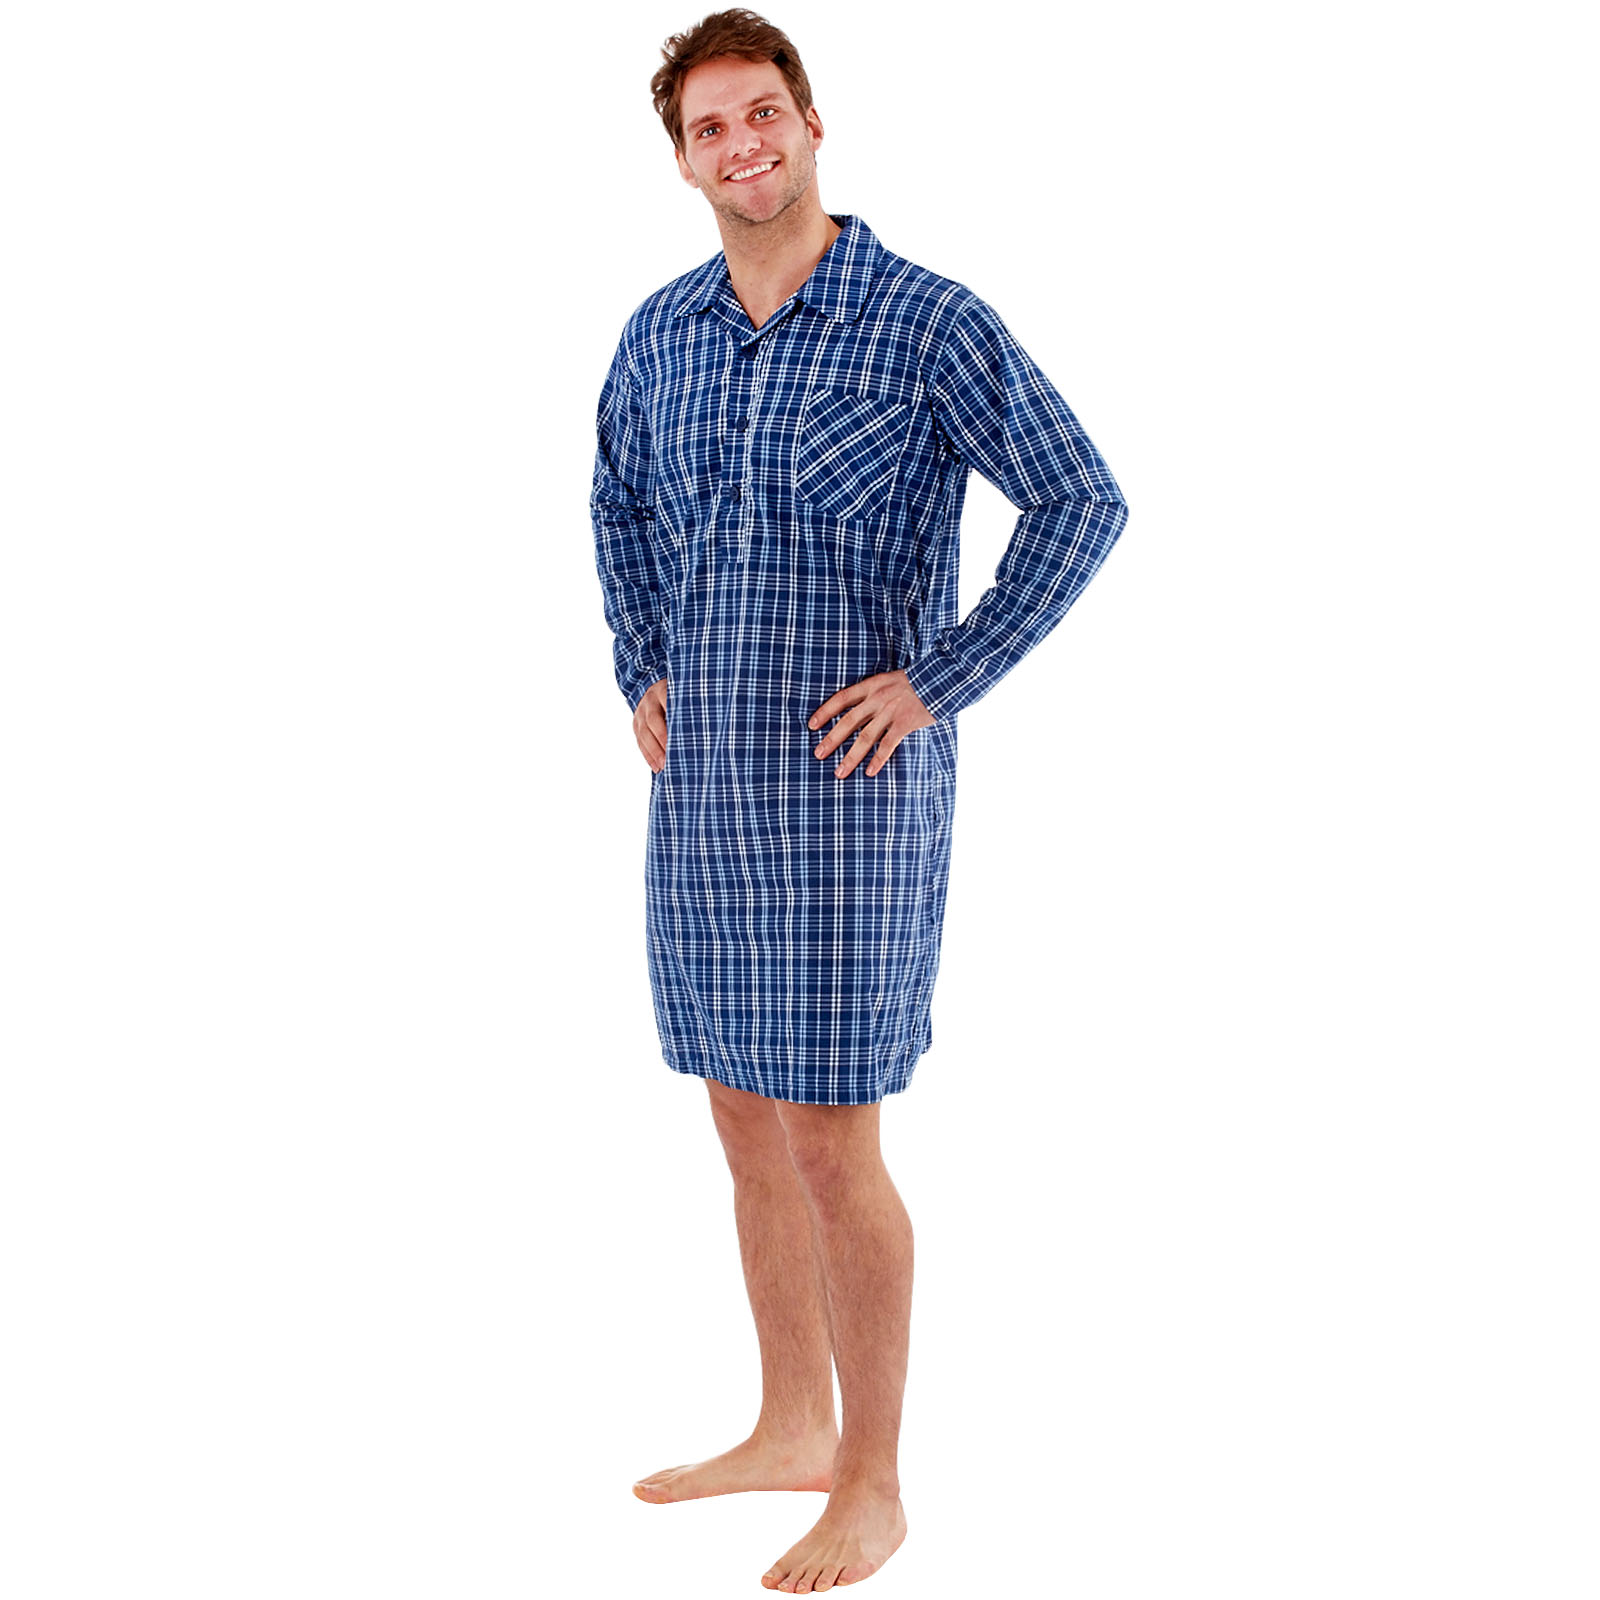 e075c7fafa Mens Summer Weight Nightshirts - Joe Maloy